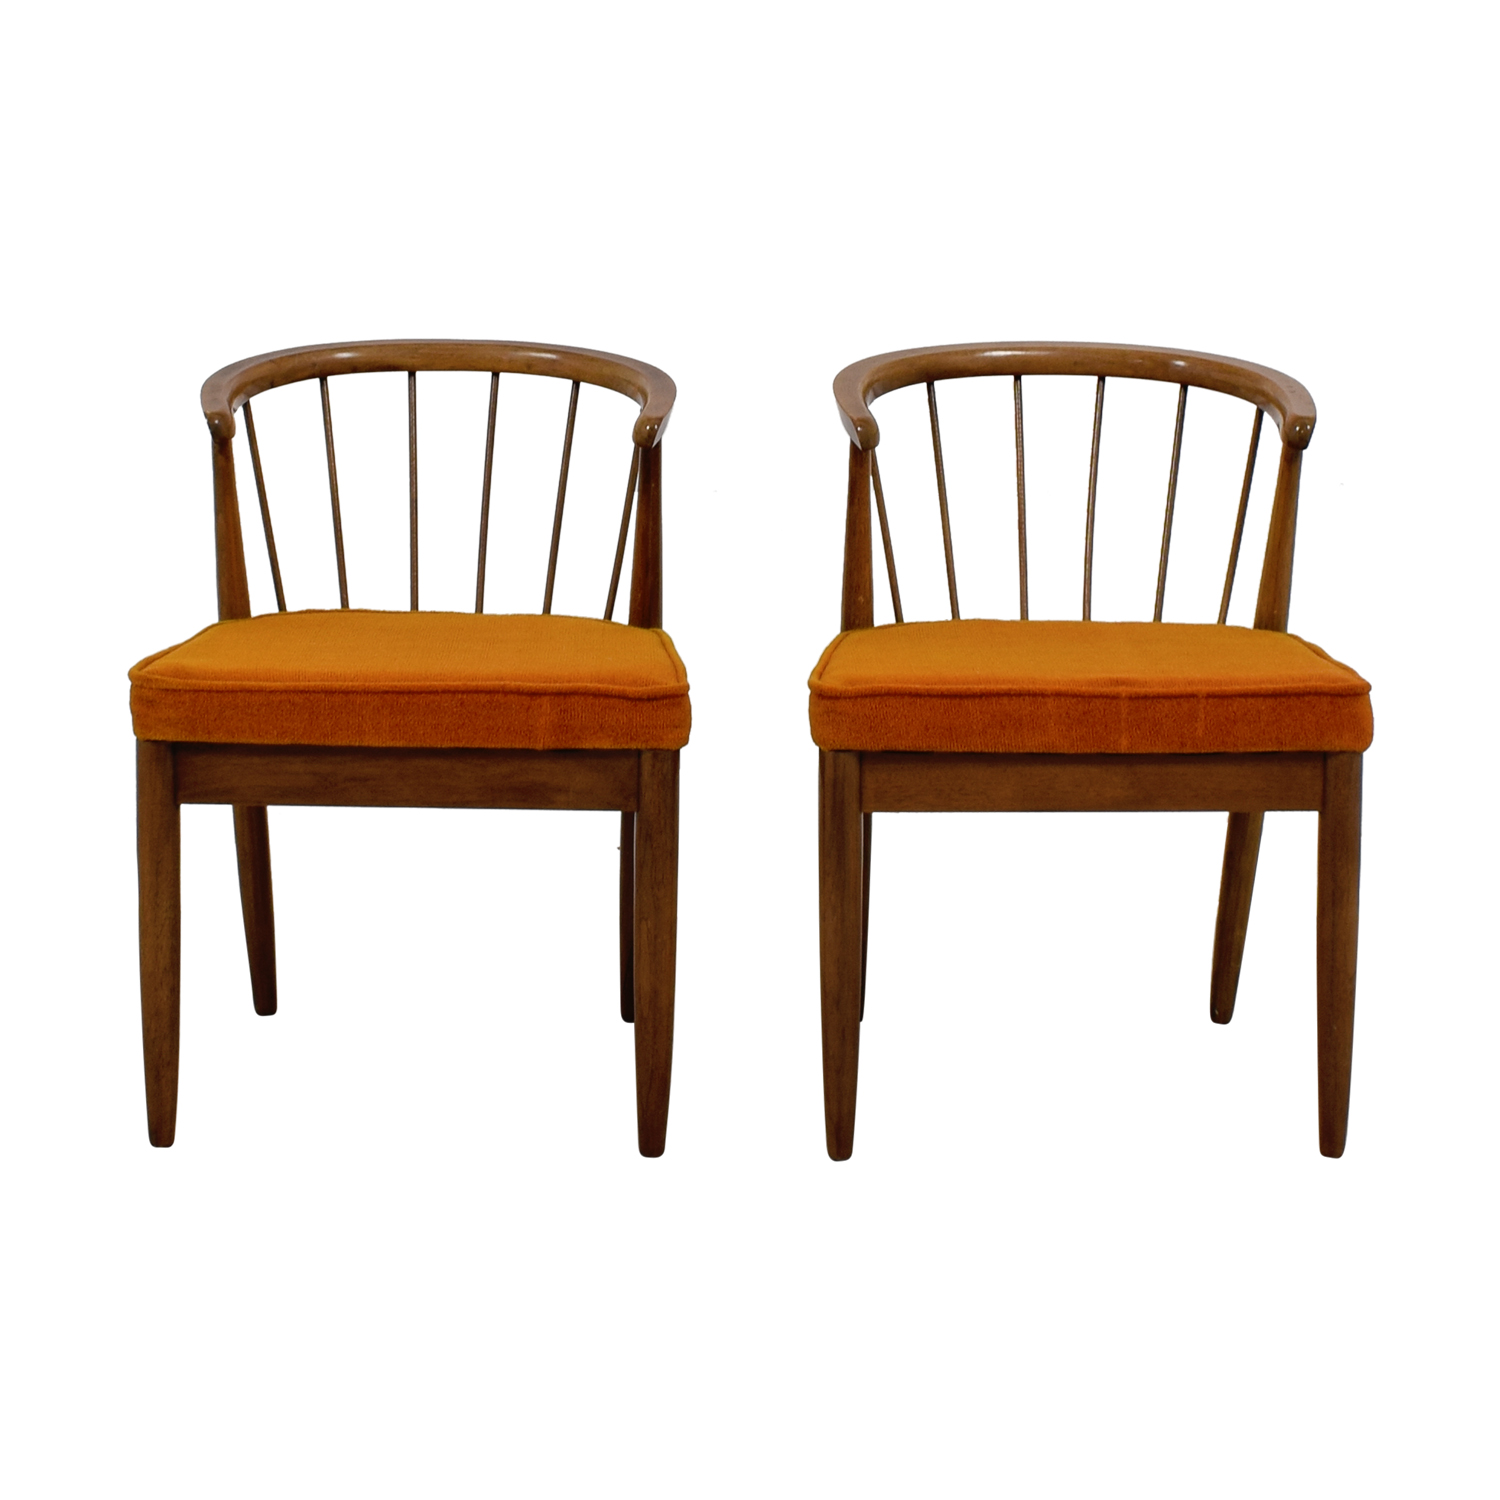 Vintage Wood and Orange Cushion Chairs nyc